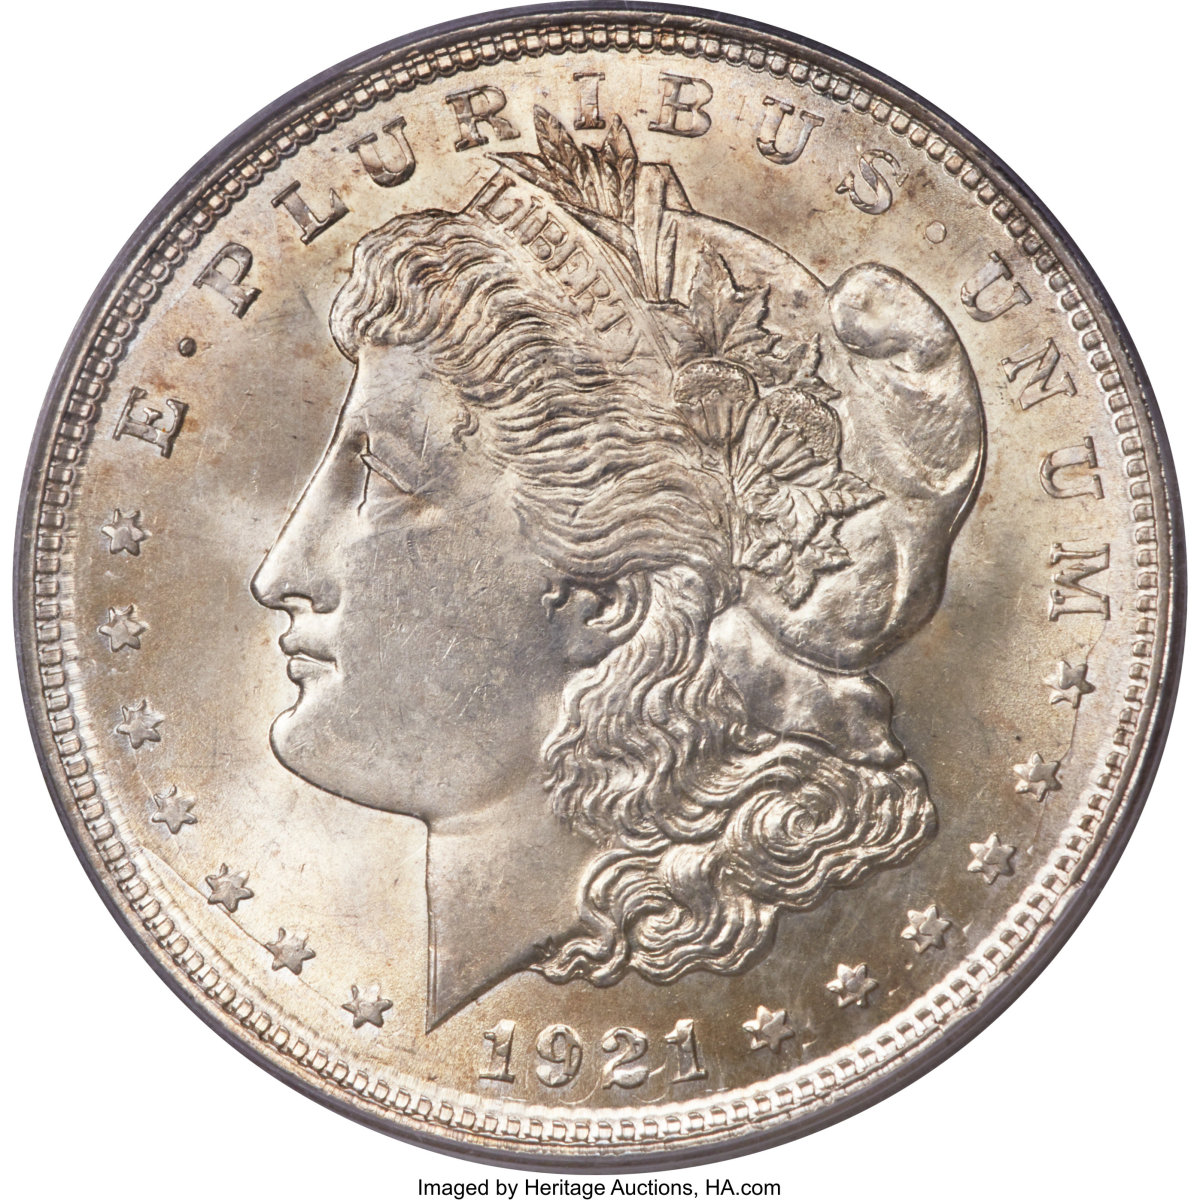 1921 Morgan Dollar. Image courtesy of Heritage Auctions